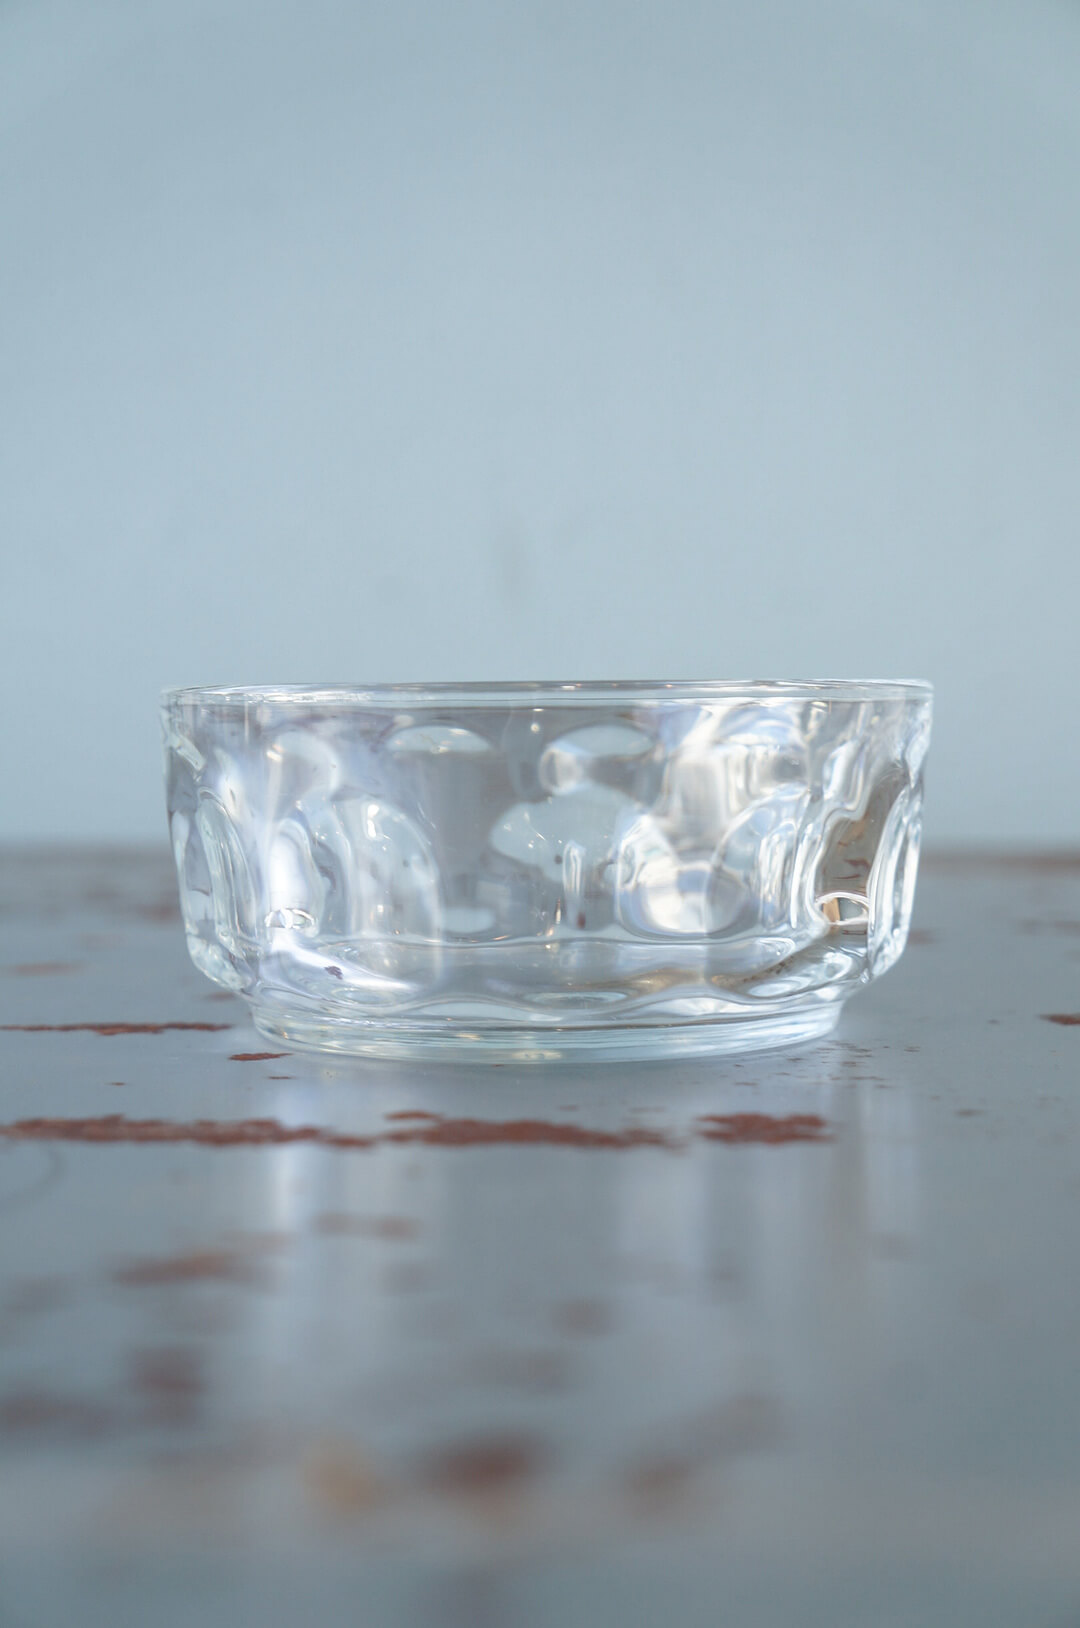 arcoroc Bowl Glass Ware Made In France/アルコロック ボウル ガラス フランス製 食器 レトロ 2